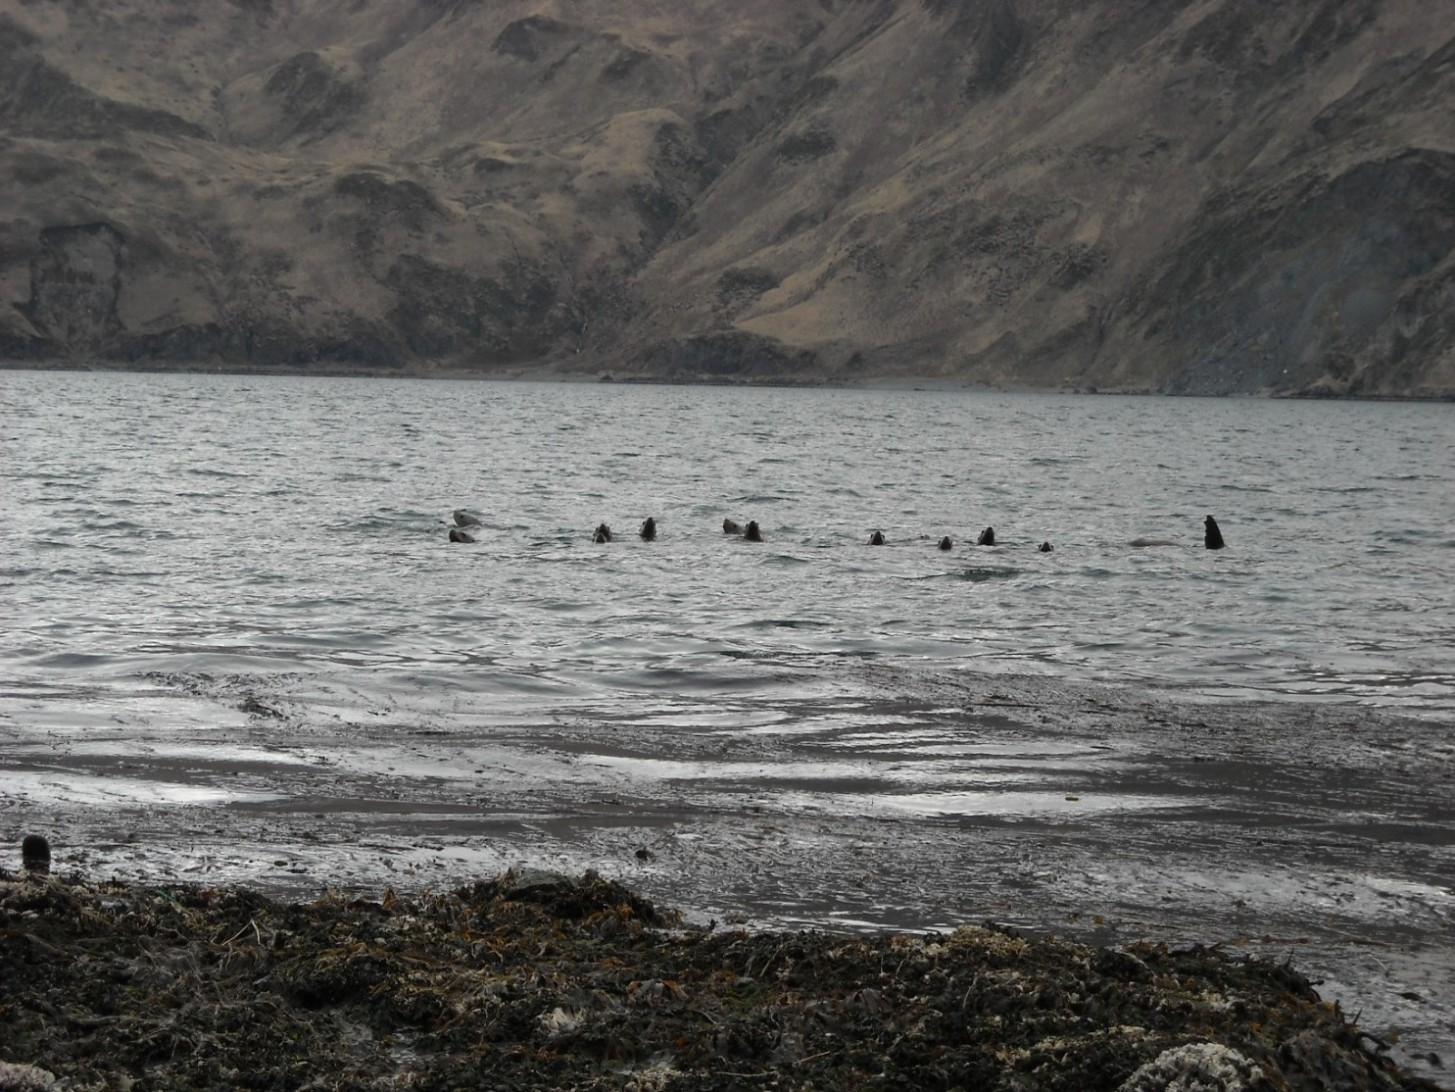 And lots of sea lions!